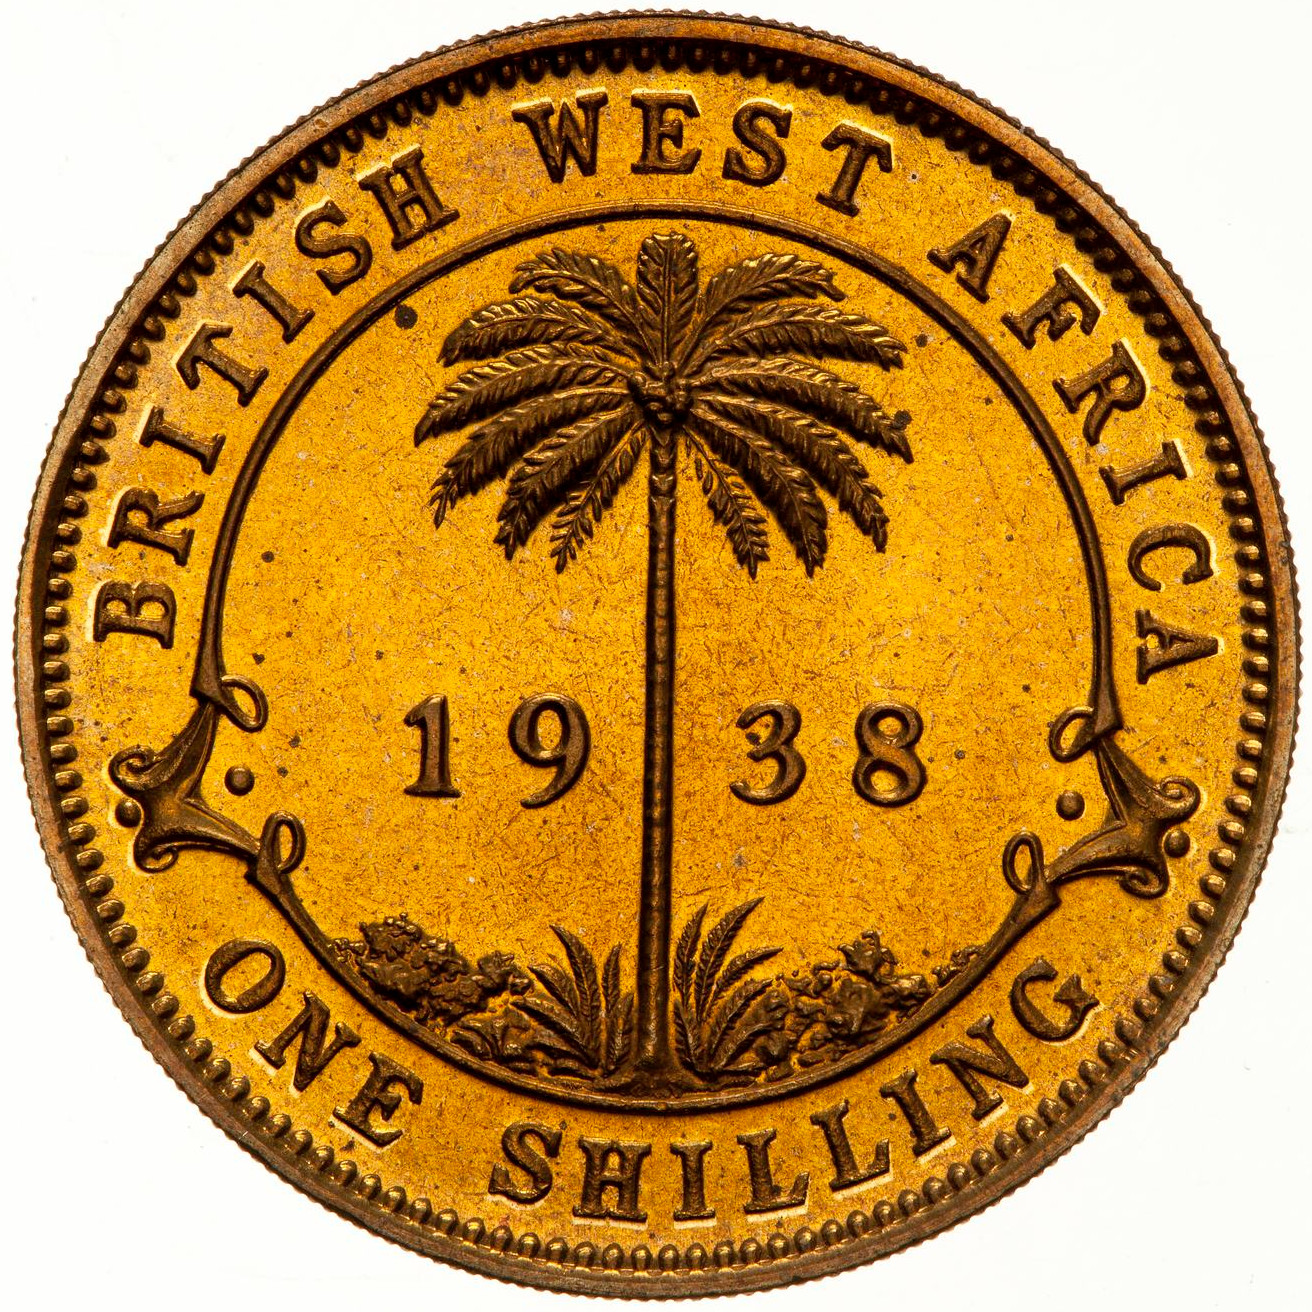 Shilling: Photo Proof Coin - 1 Shilling, British West Africa, 1938